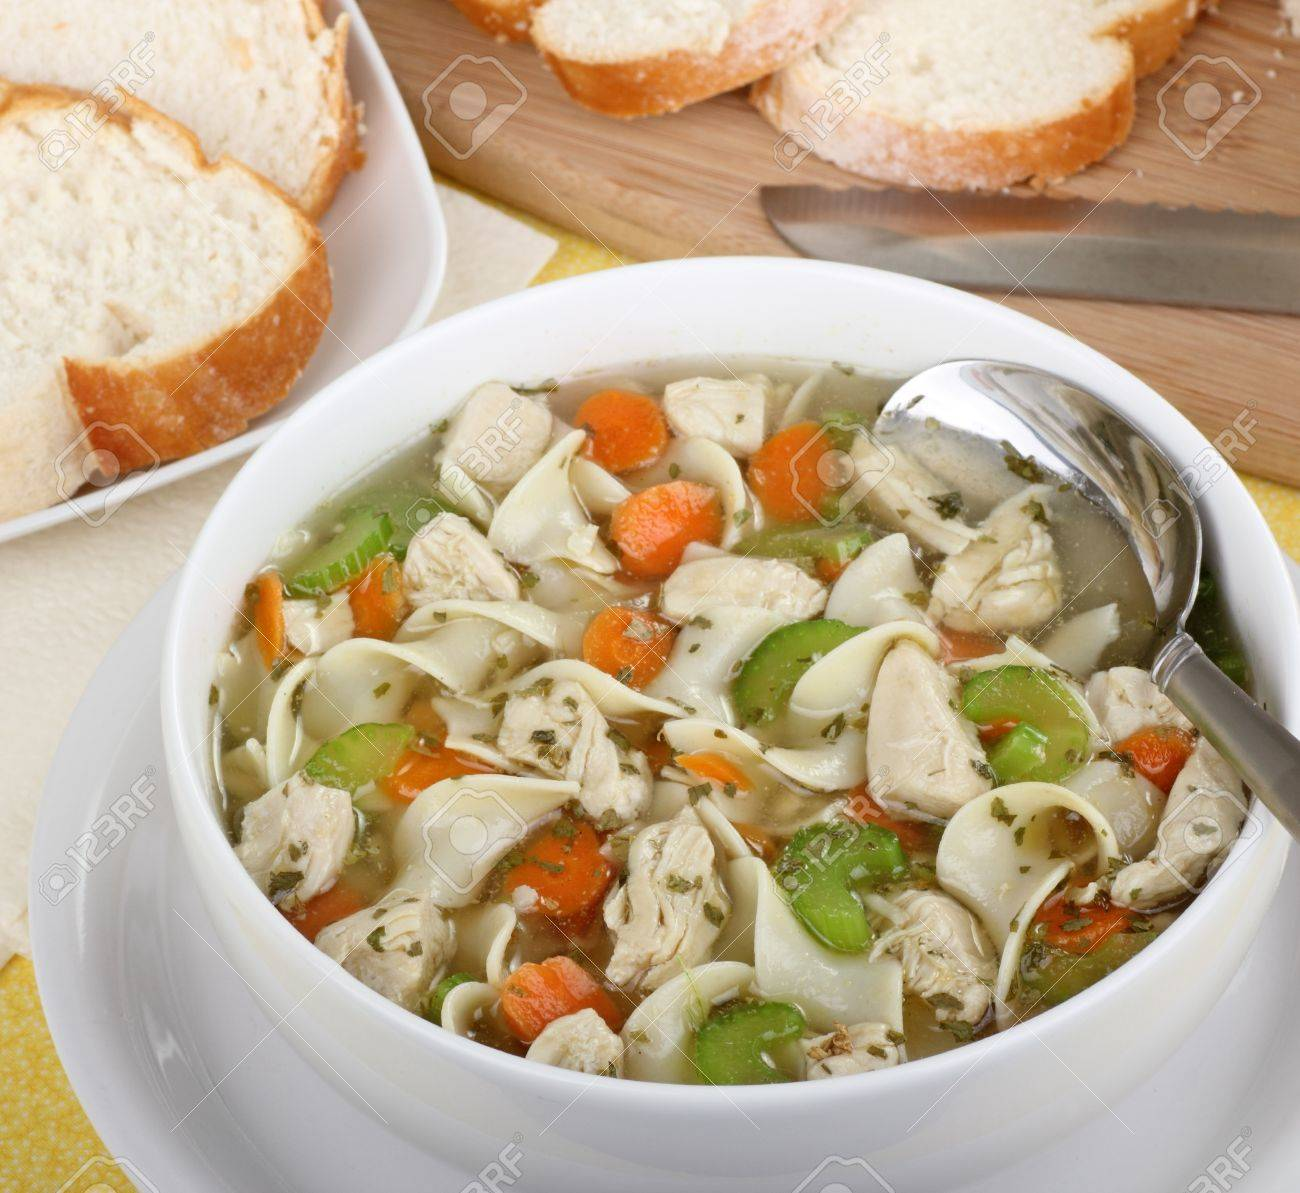 Bowl of chicken noodle soup with celery and carrots Stock Photo - 16113266